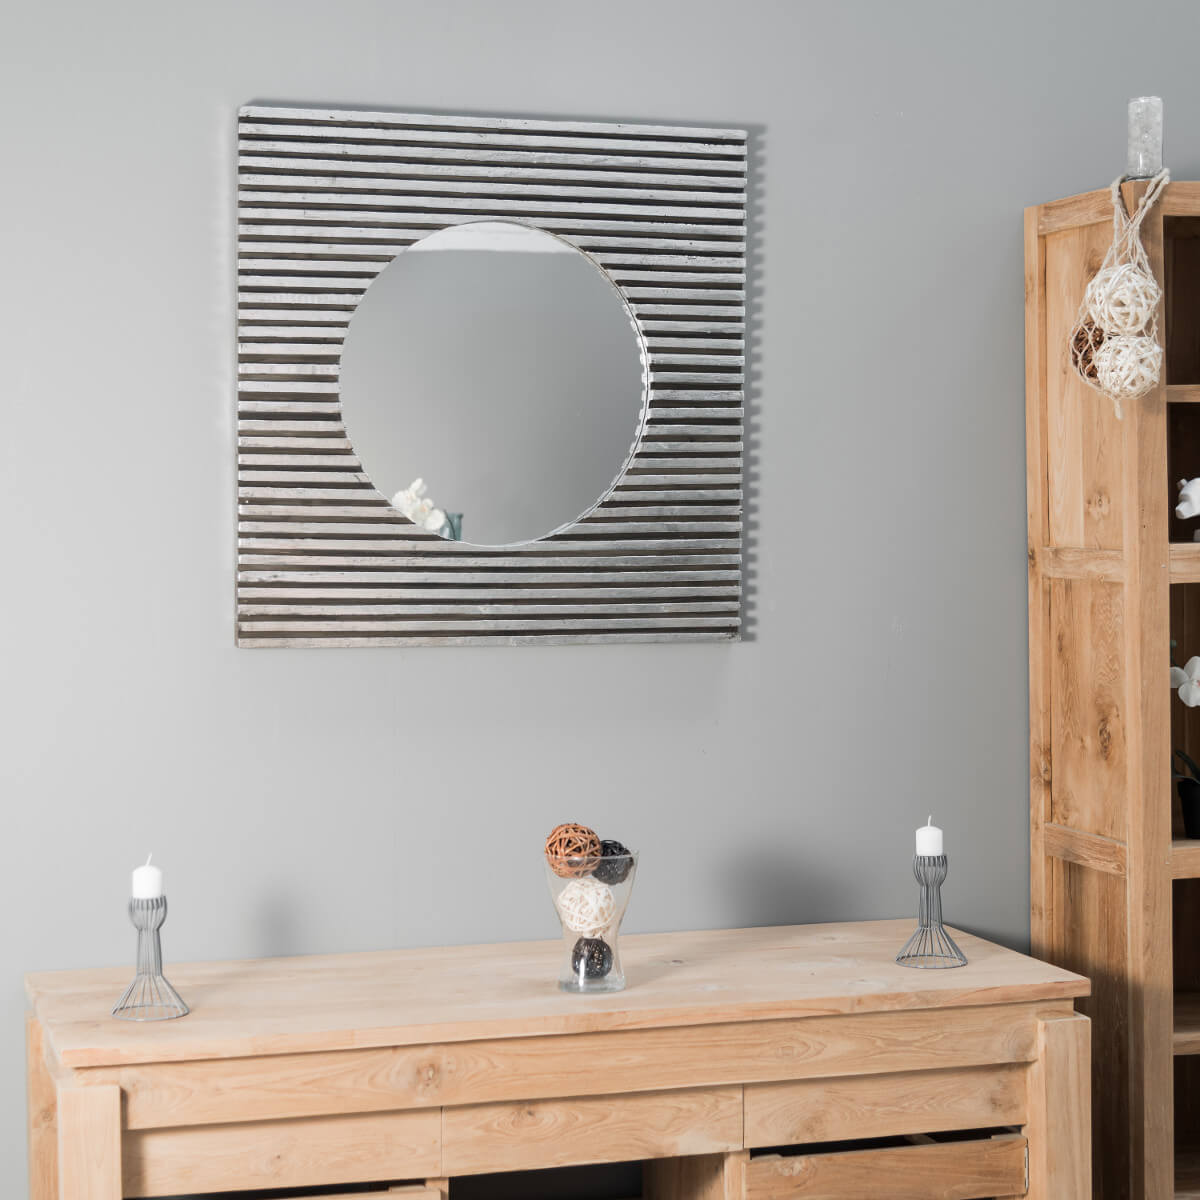 Miroir de d coration en bois massif art d co carr for Miroir 130 x 80